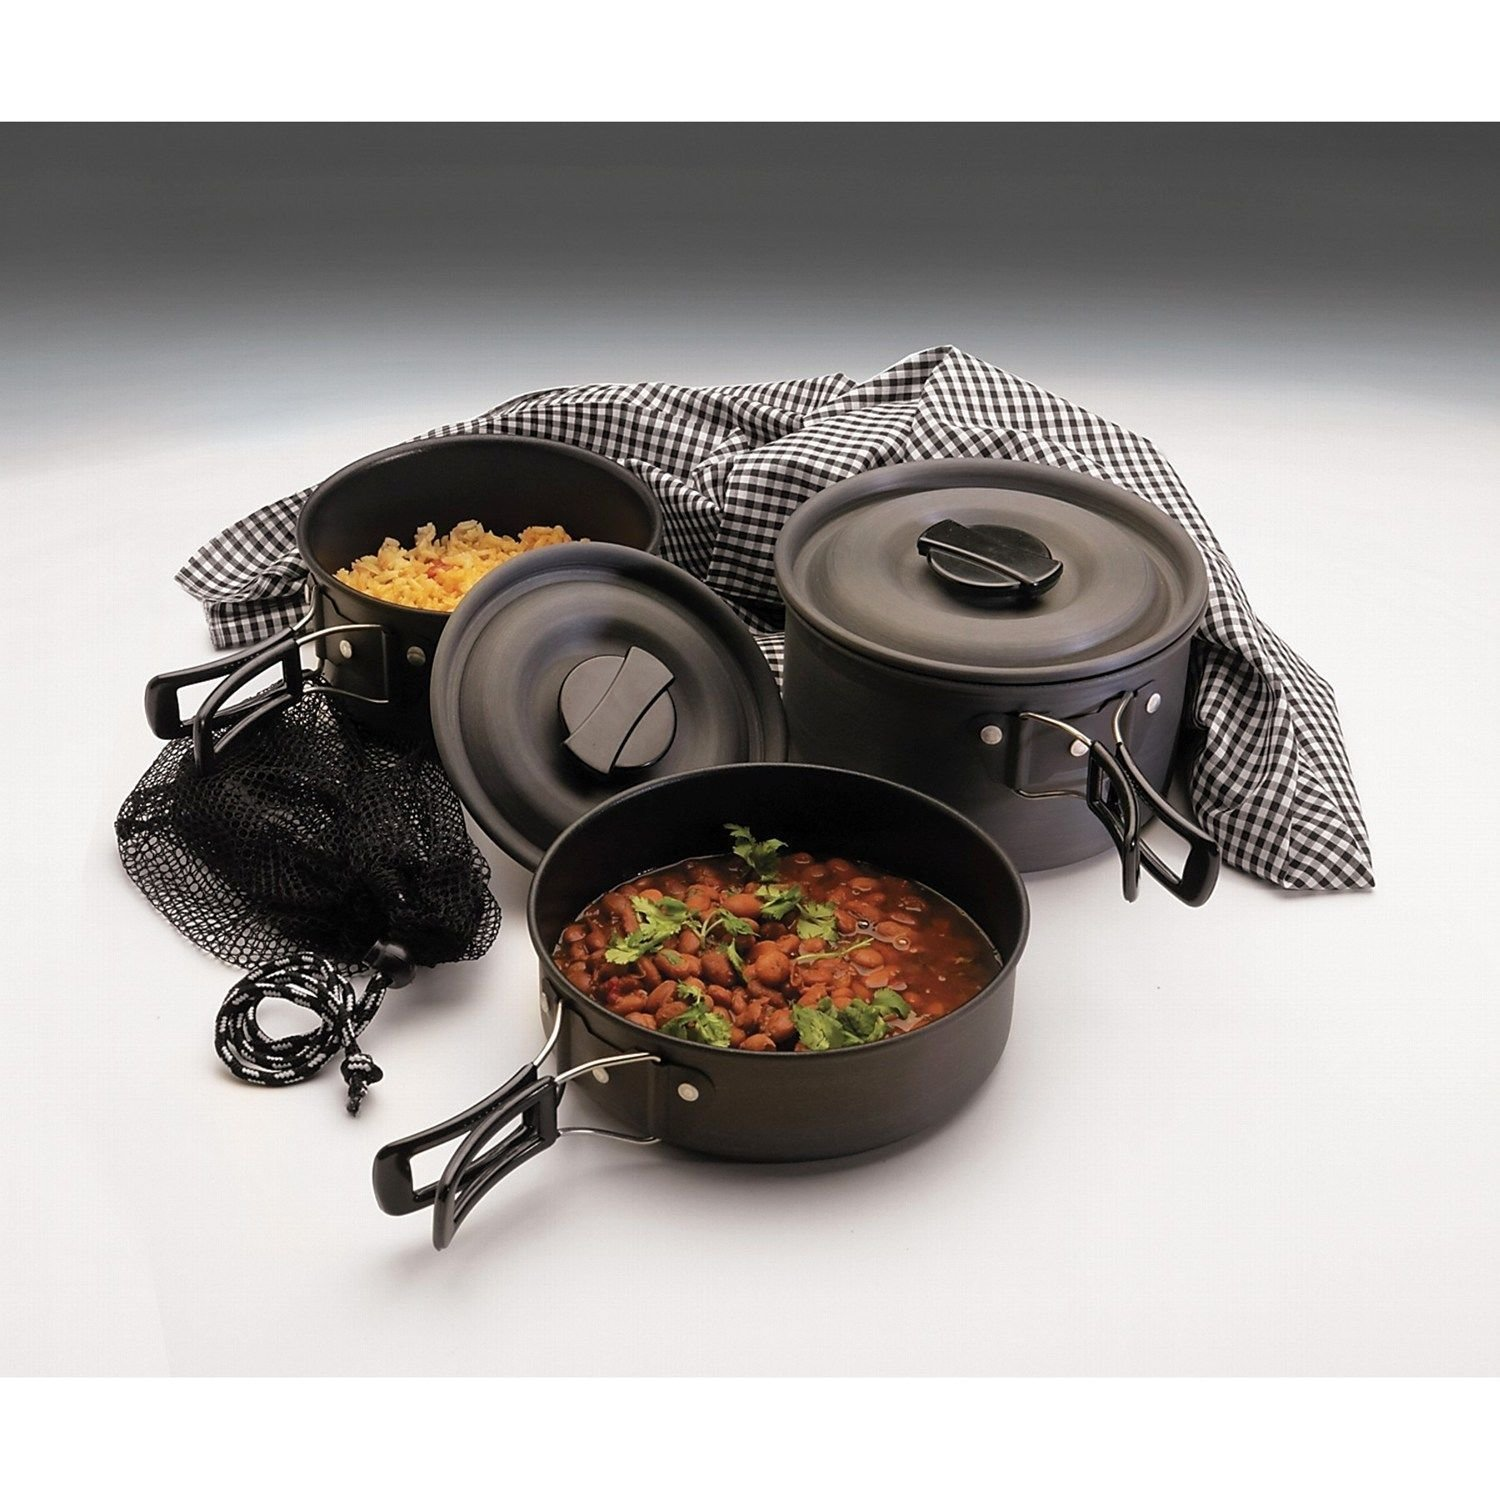 Texsport 'The Scouter' Hard Anodized Cook Set